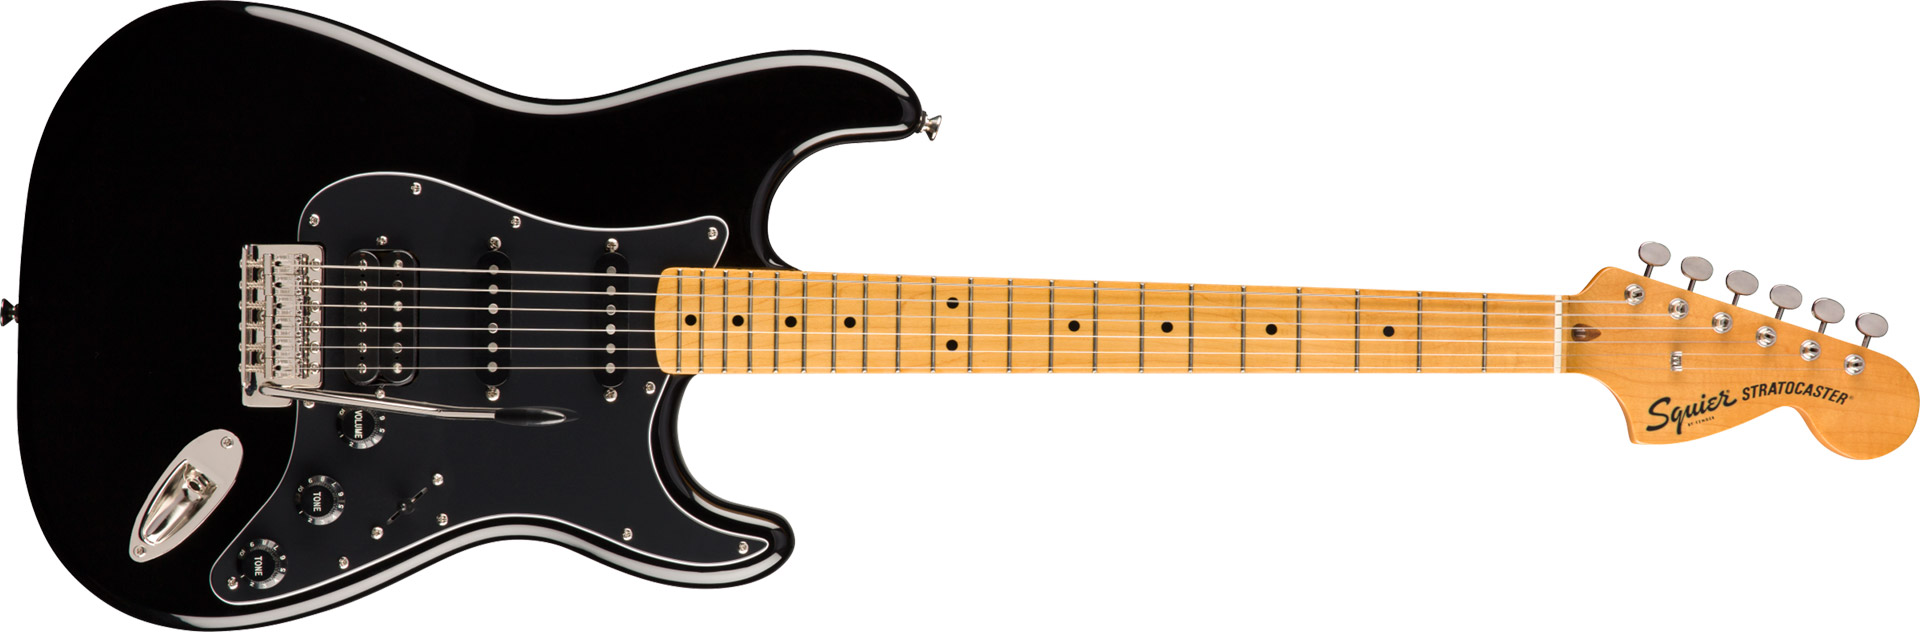 GUITARRA FENDER SQUIER CLASSIC VIBE 70S STRATOCASTER HSS MN - 037-4023-506 - BLACK